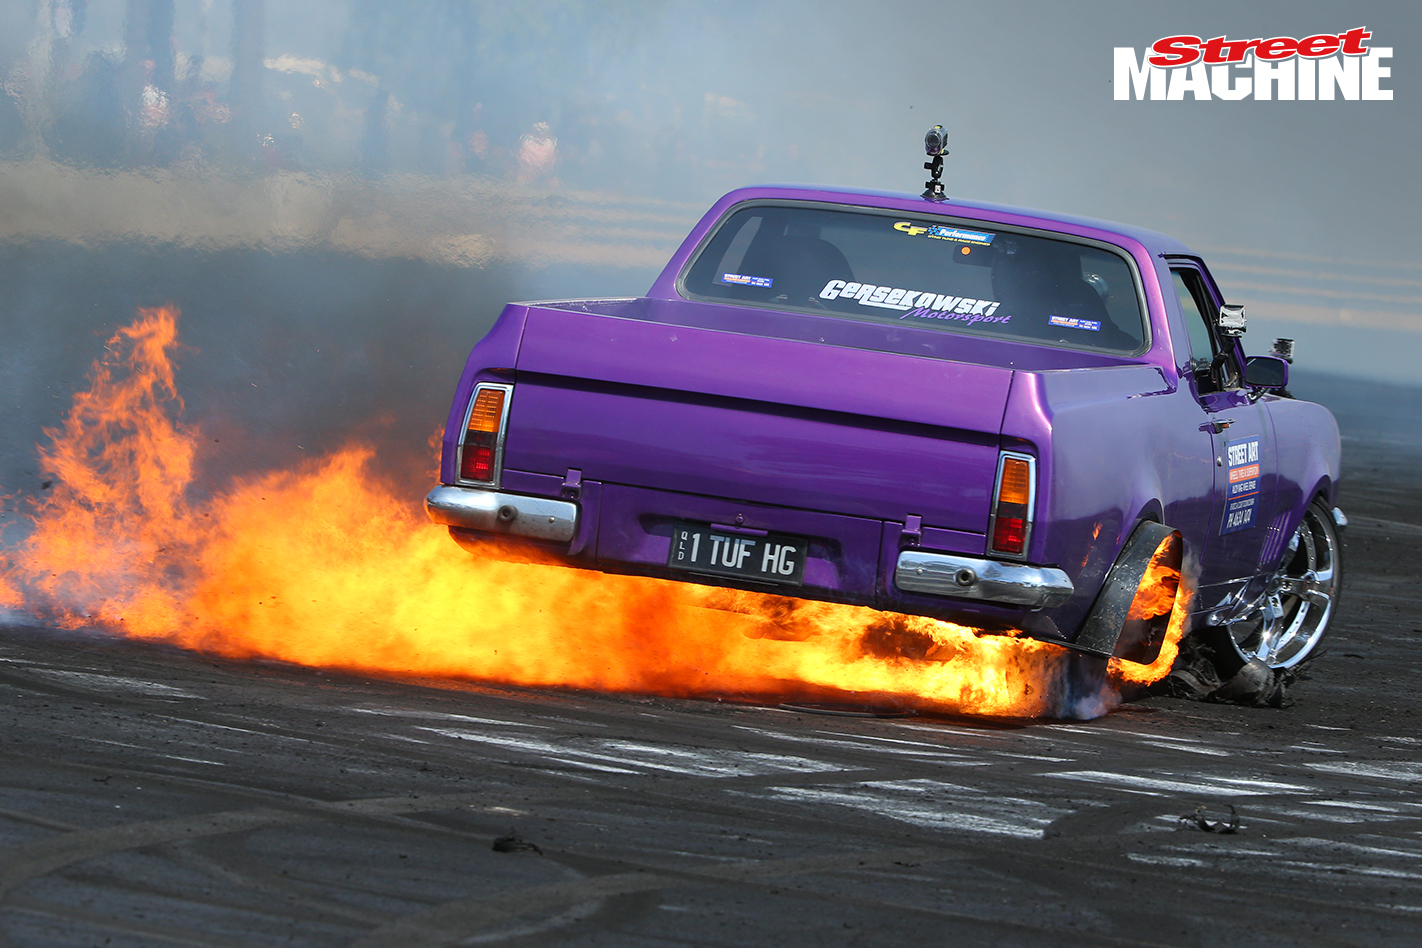 HG Ute Burnout Fire Powercruise